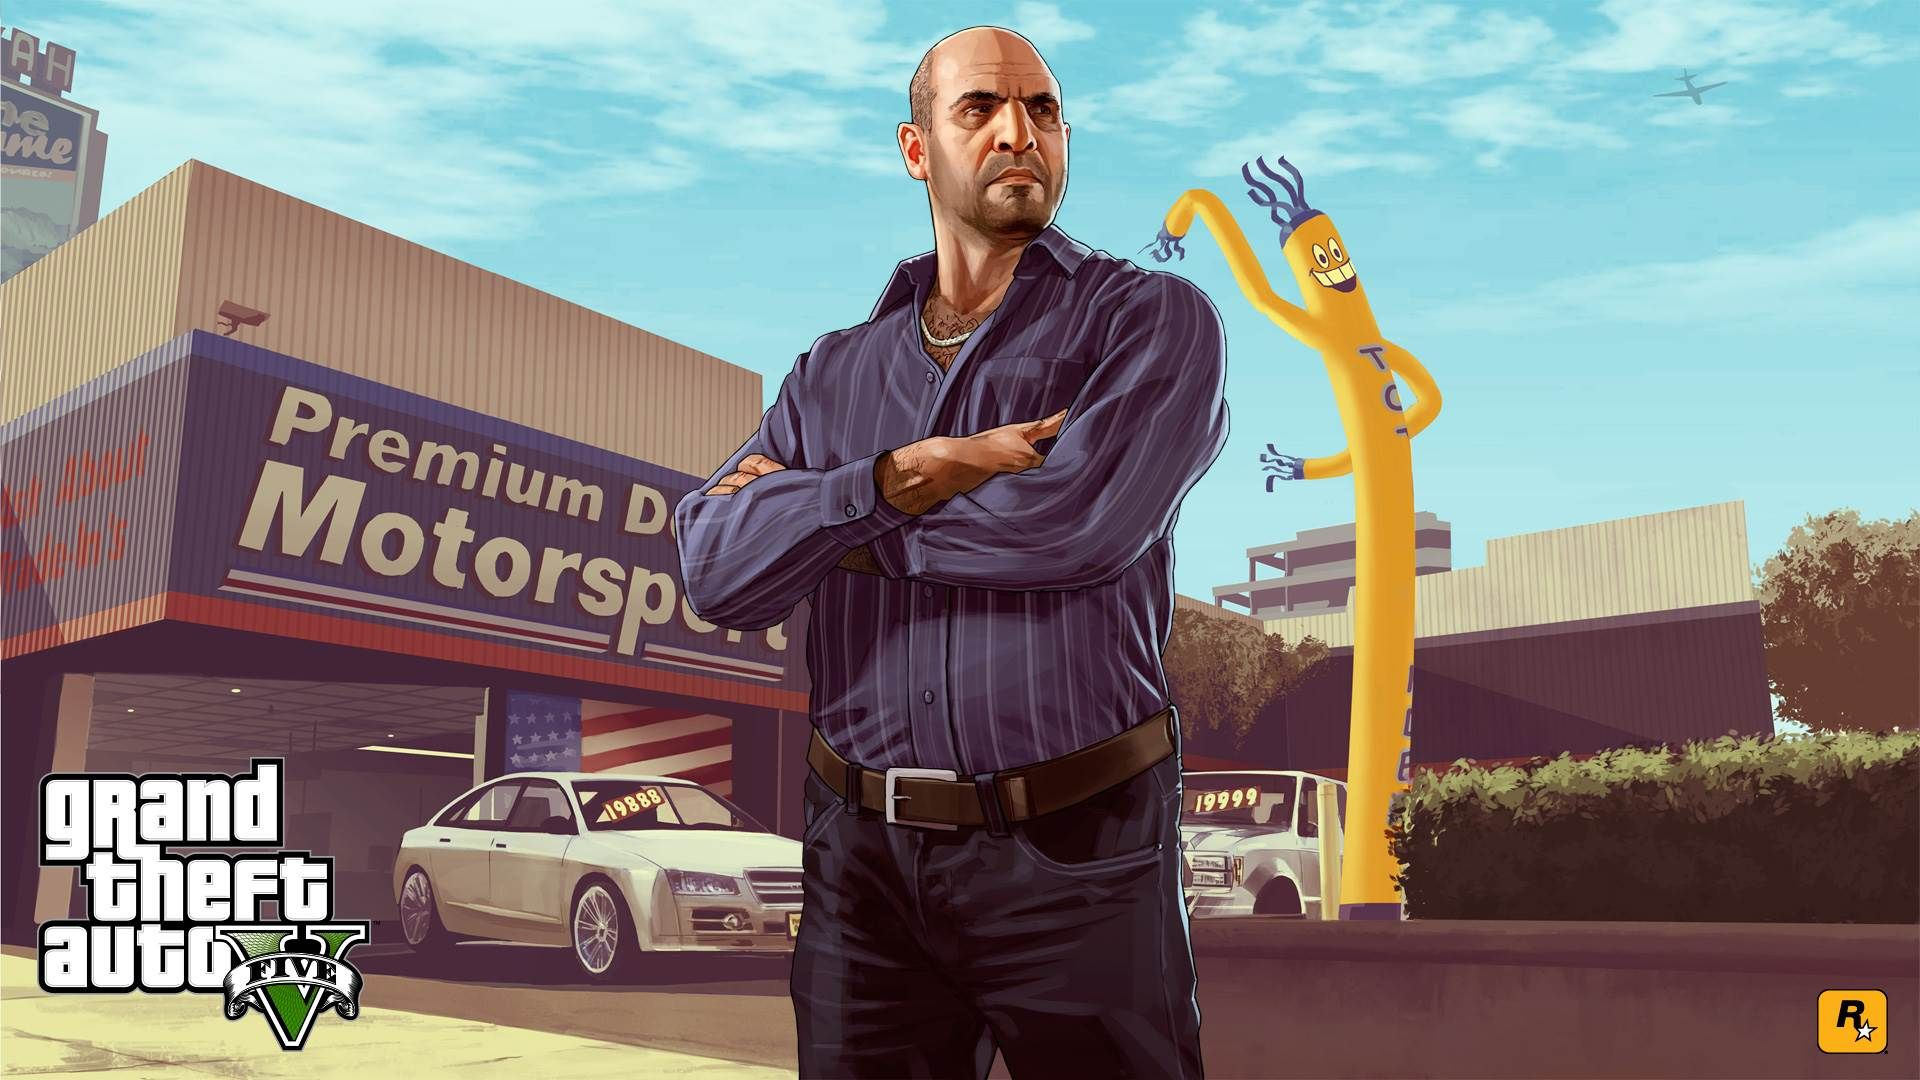 Download image gta5 pc android iphone and ipad wallpapers and - Download Wallpaper Gta V Grand Theft Auto V Game 1920 1080 Gta V